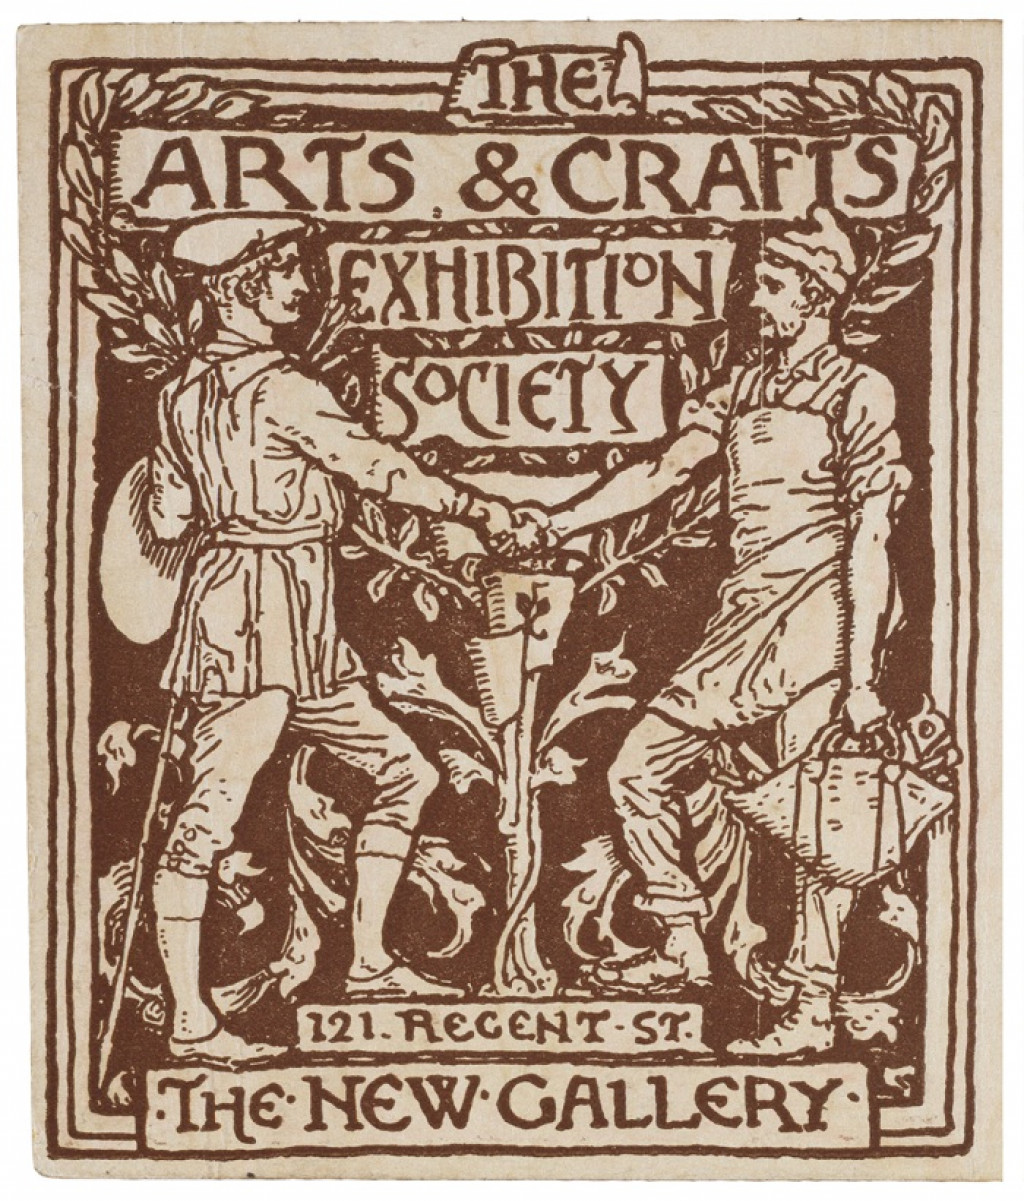 the history of arts and crafts History of the arts and crafts movement in america from 1875 to 1895.